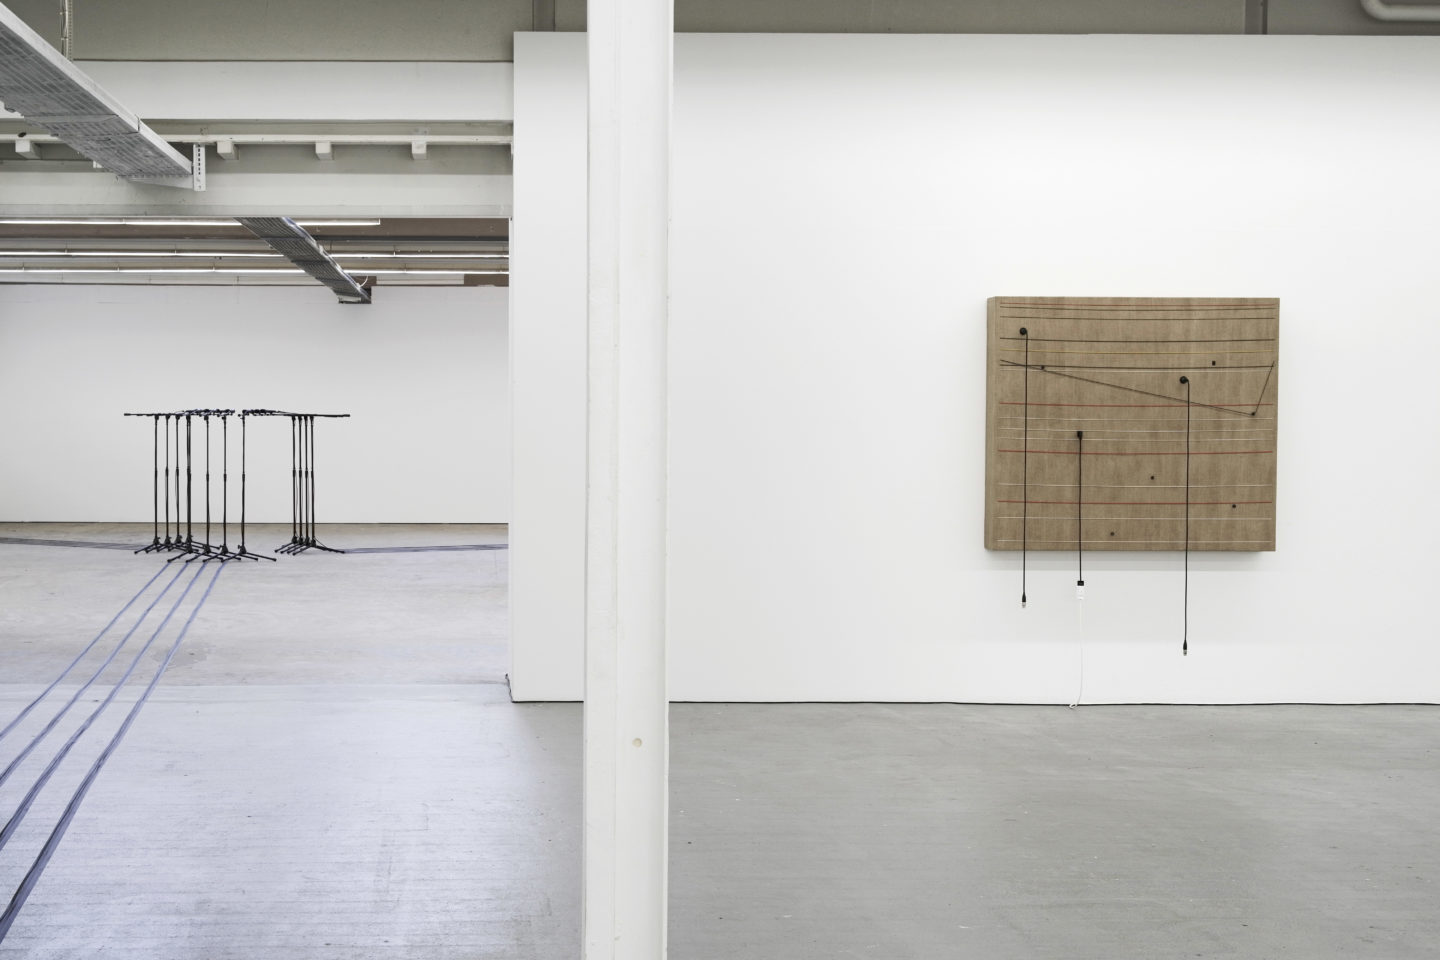 Exhibition View Naama Tsabar «Transitions #4 – view on Barricade #2 / Transition, 2016» at Kunsthaus Baselland 2018, / Photo: Serge Hasenböhler